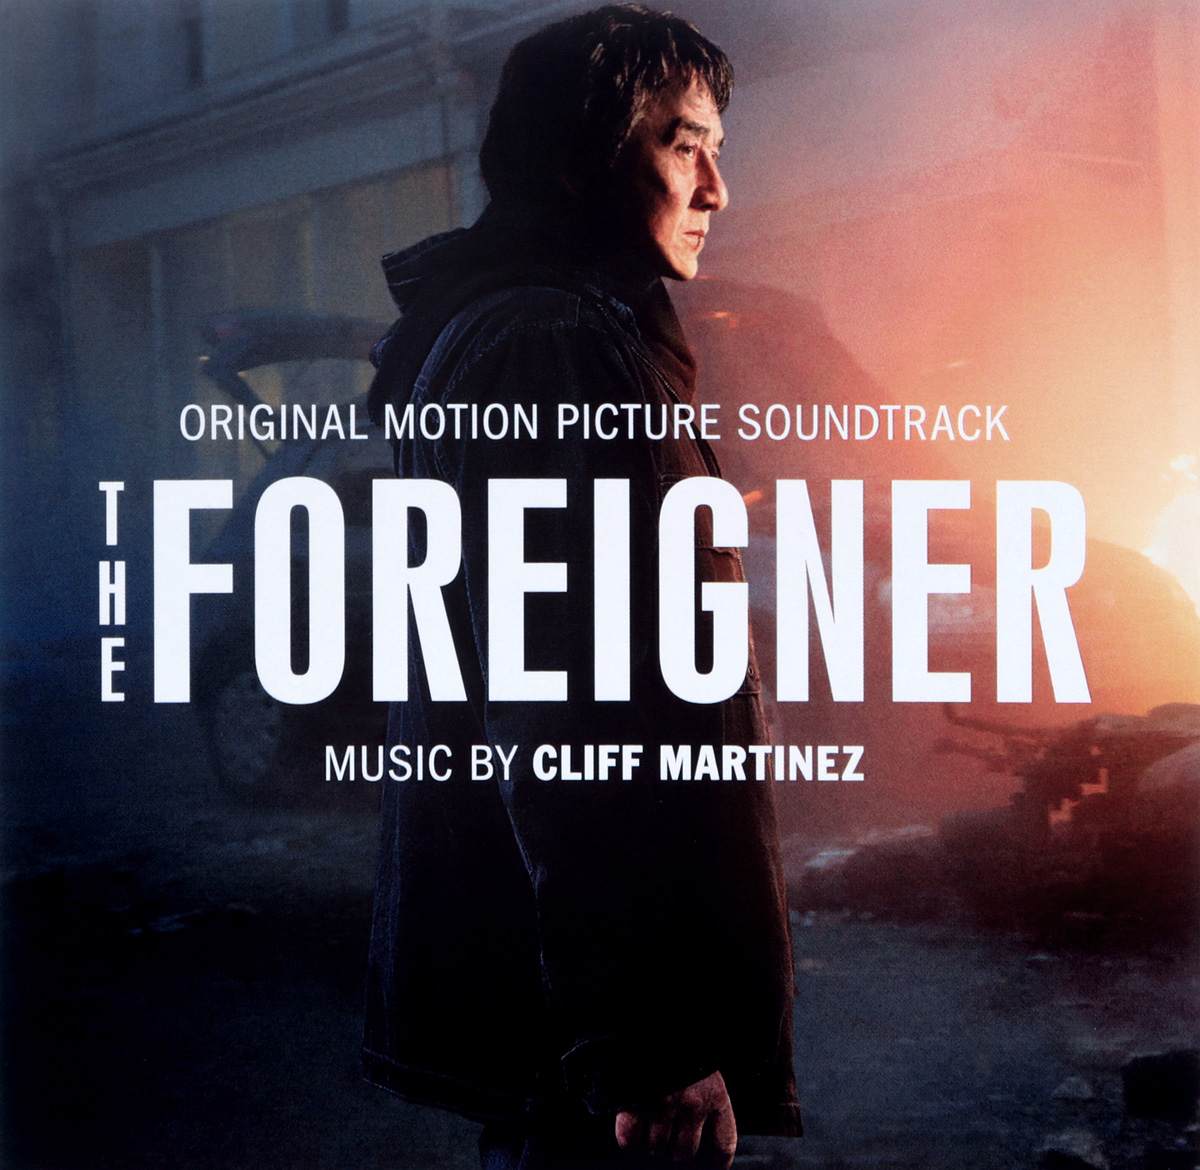 Клифф Мартинес Cliff Martinez. The Foreigner